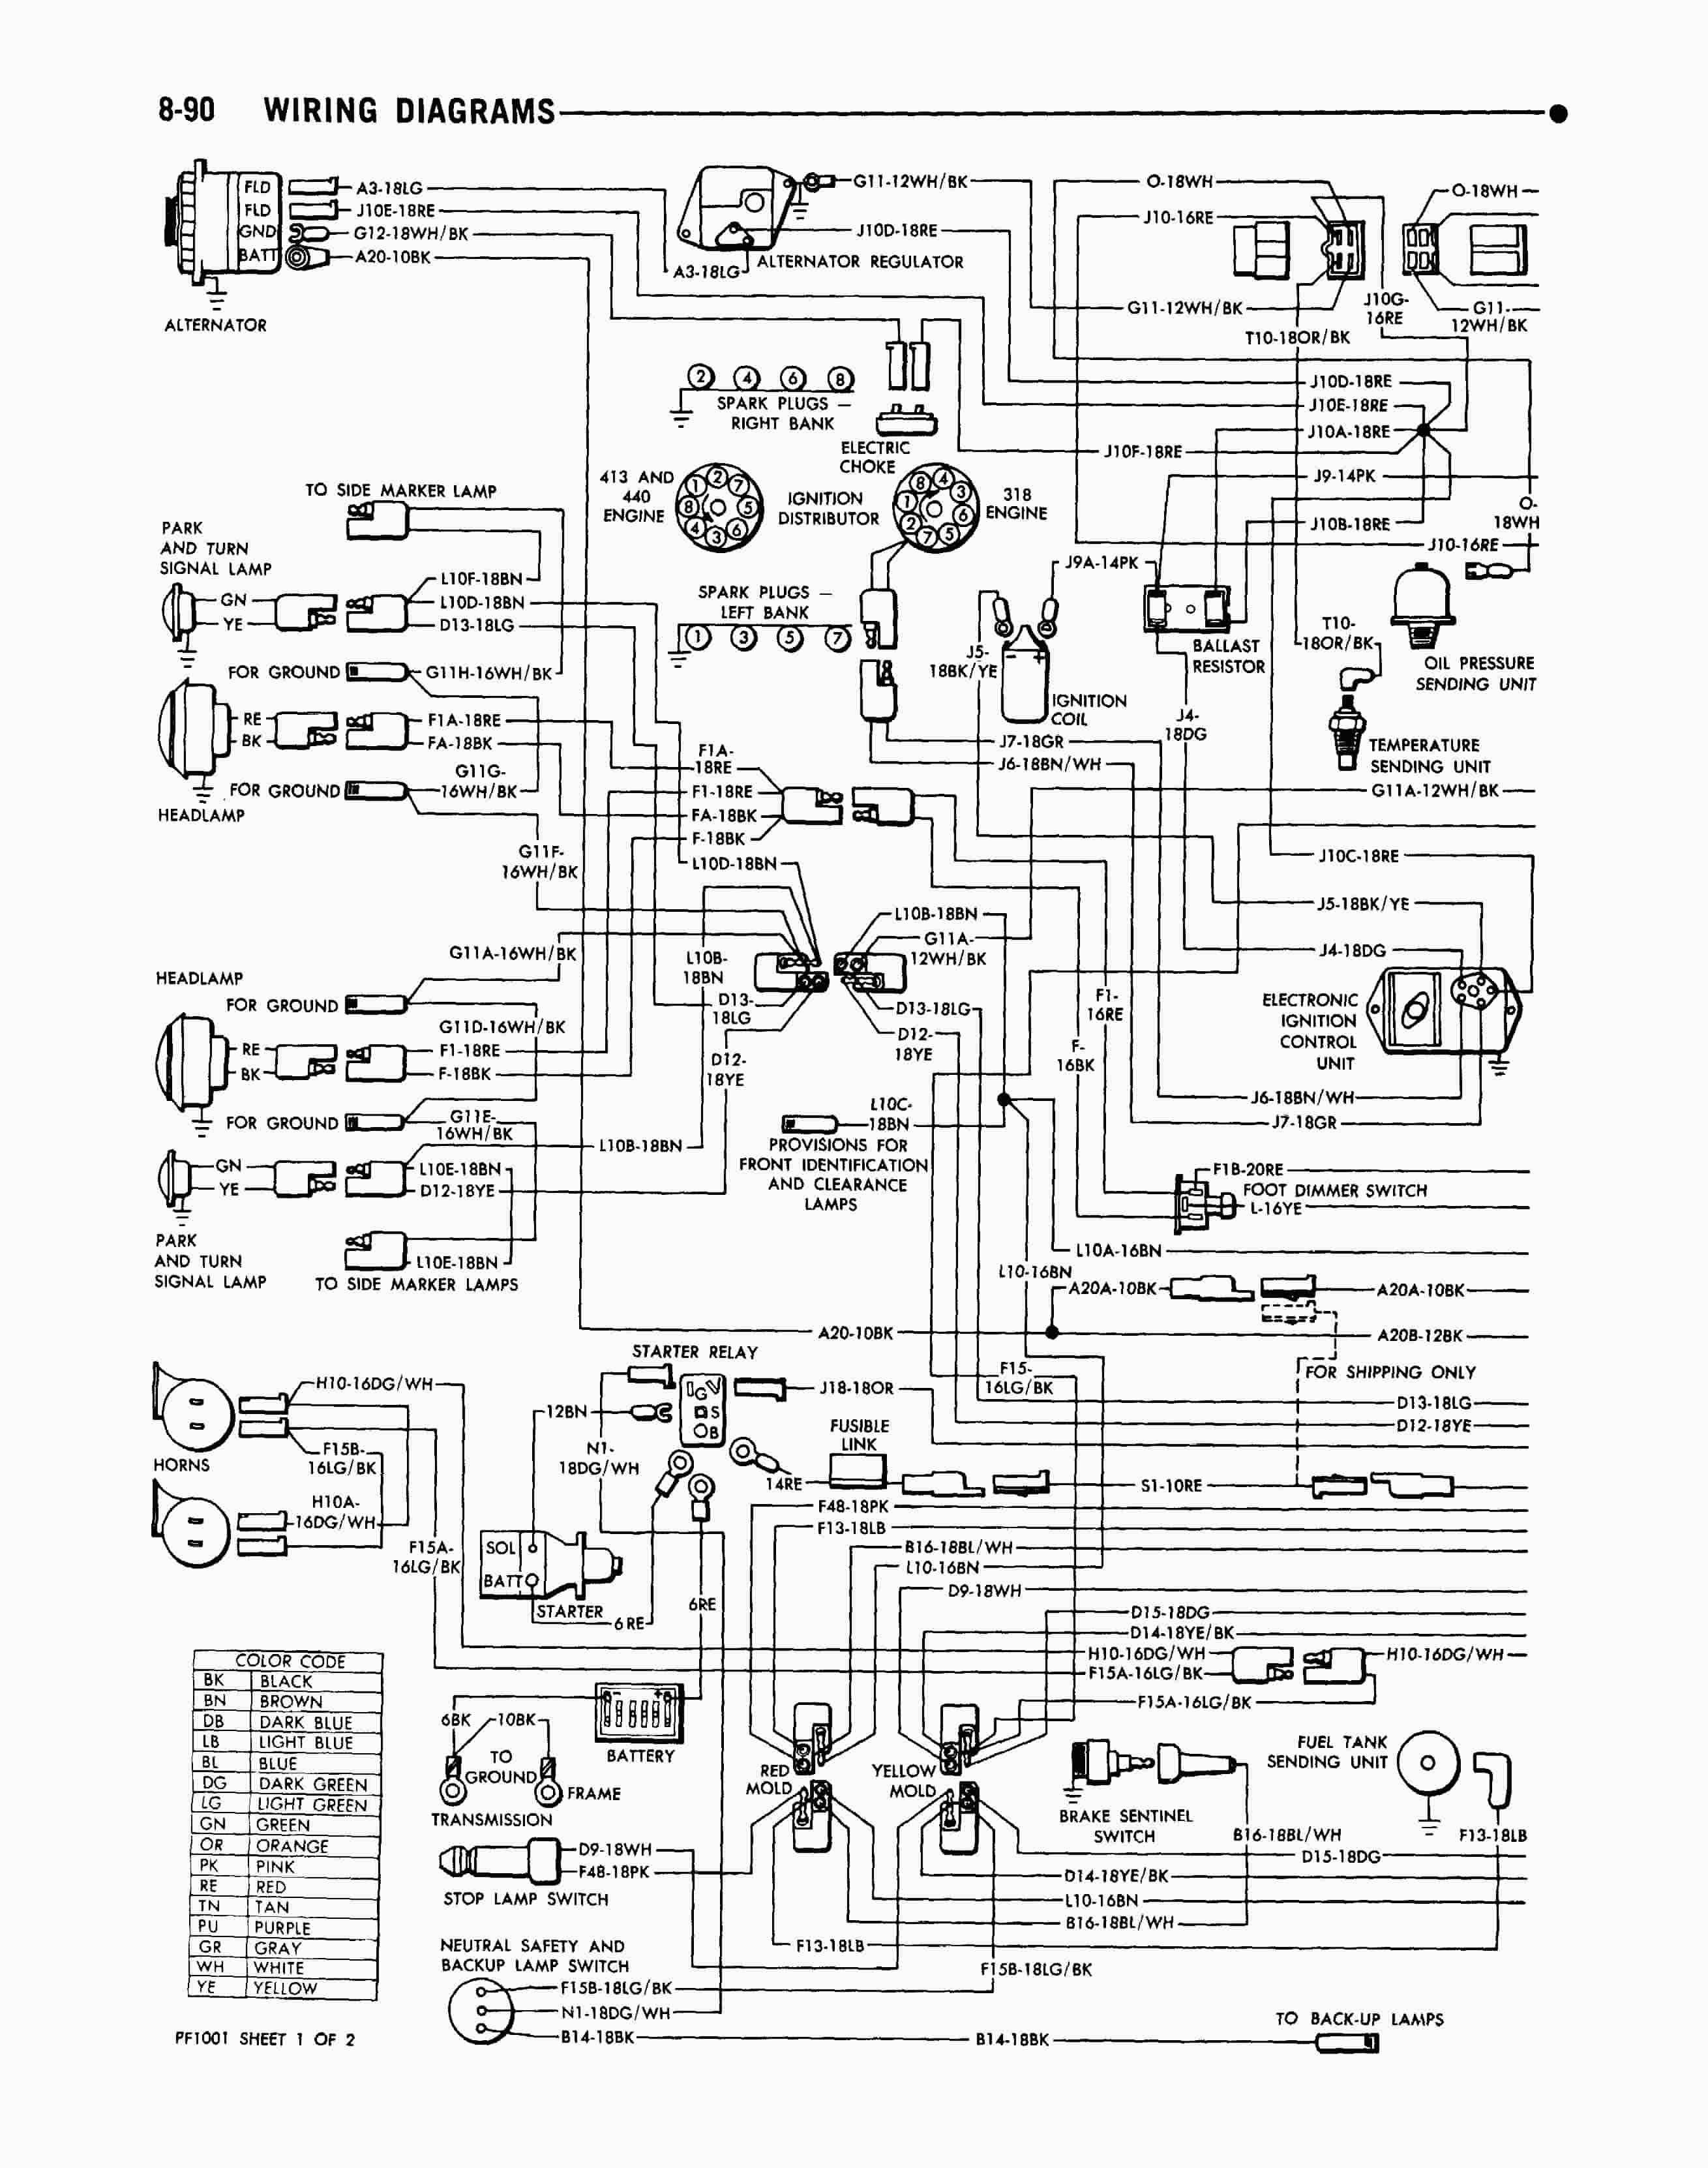 1985 Plymouth Reliant Wiring Diagram